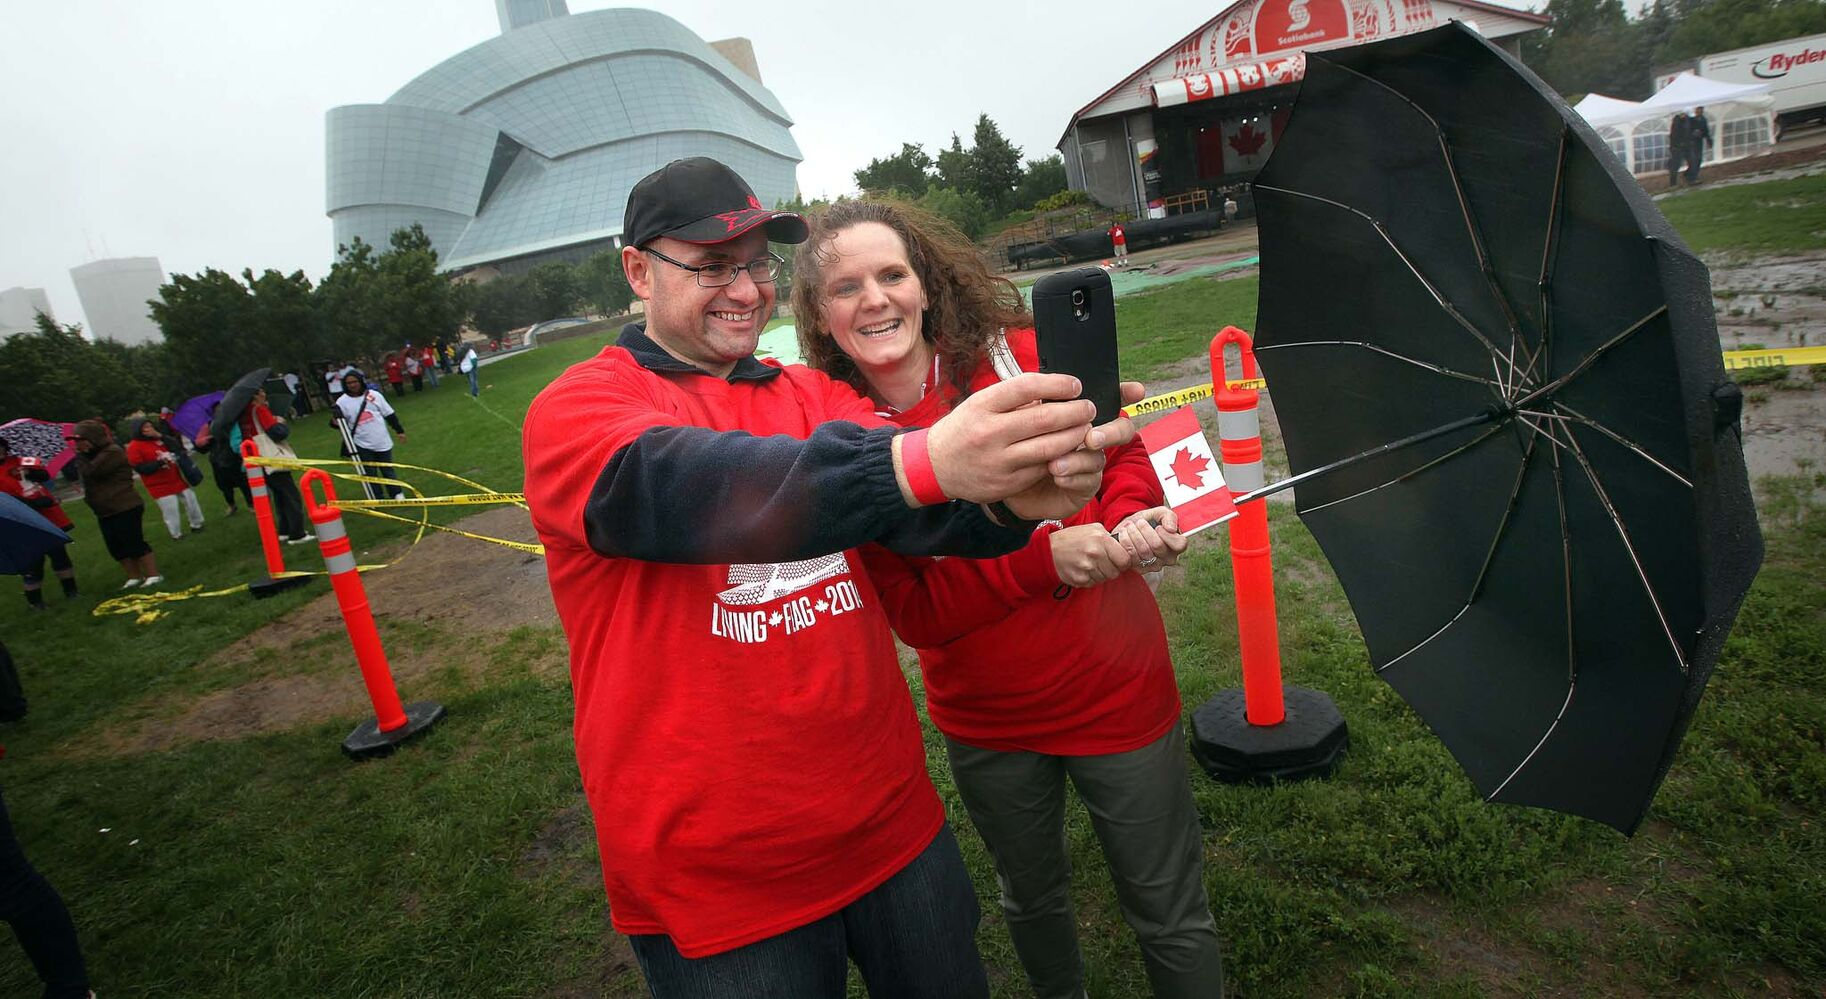 Ward Bruner and Jennifer Wilson hang onto their umbrella and smart phone trying to take a selfie in the blowing rain before taking part in the flag event. (Phil Hossack / Winnipeg Free Press)